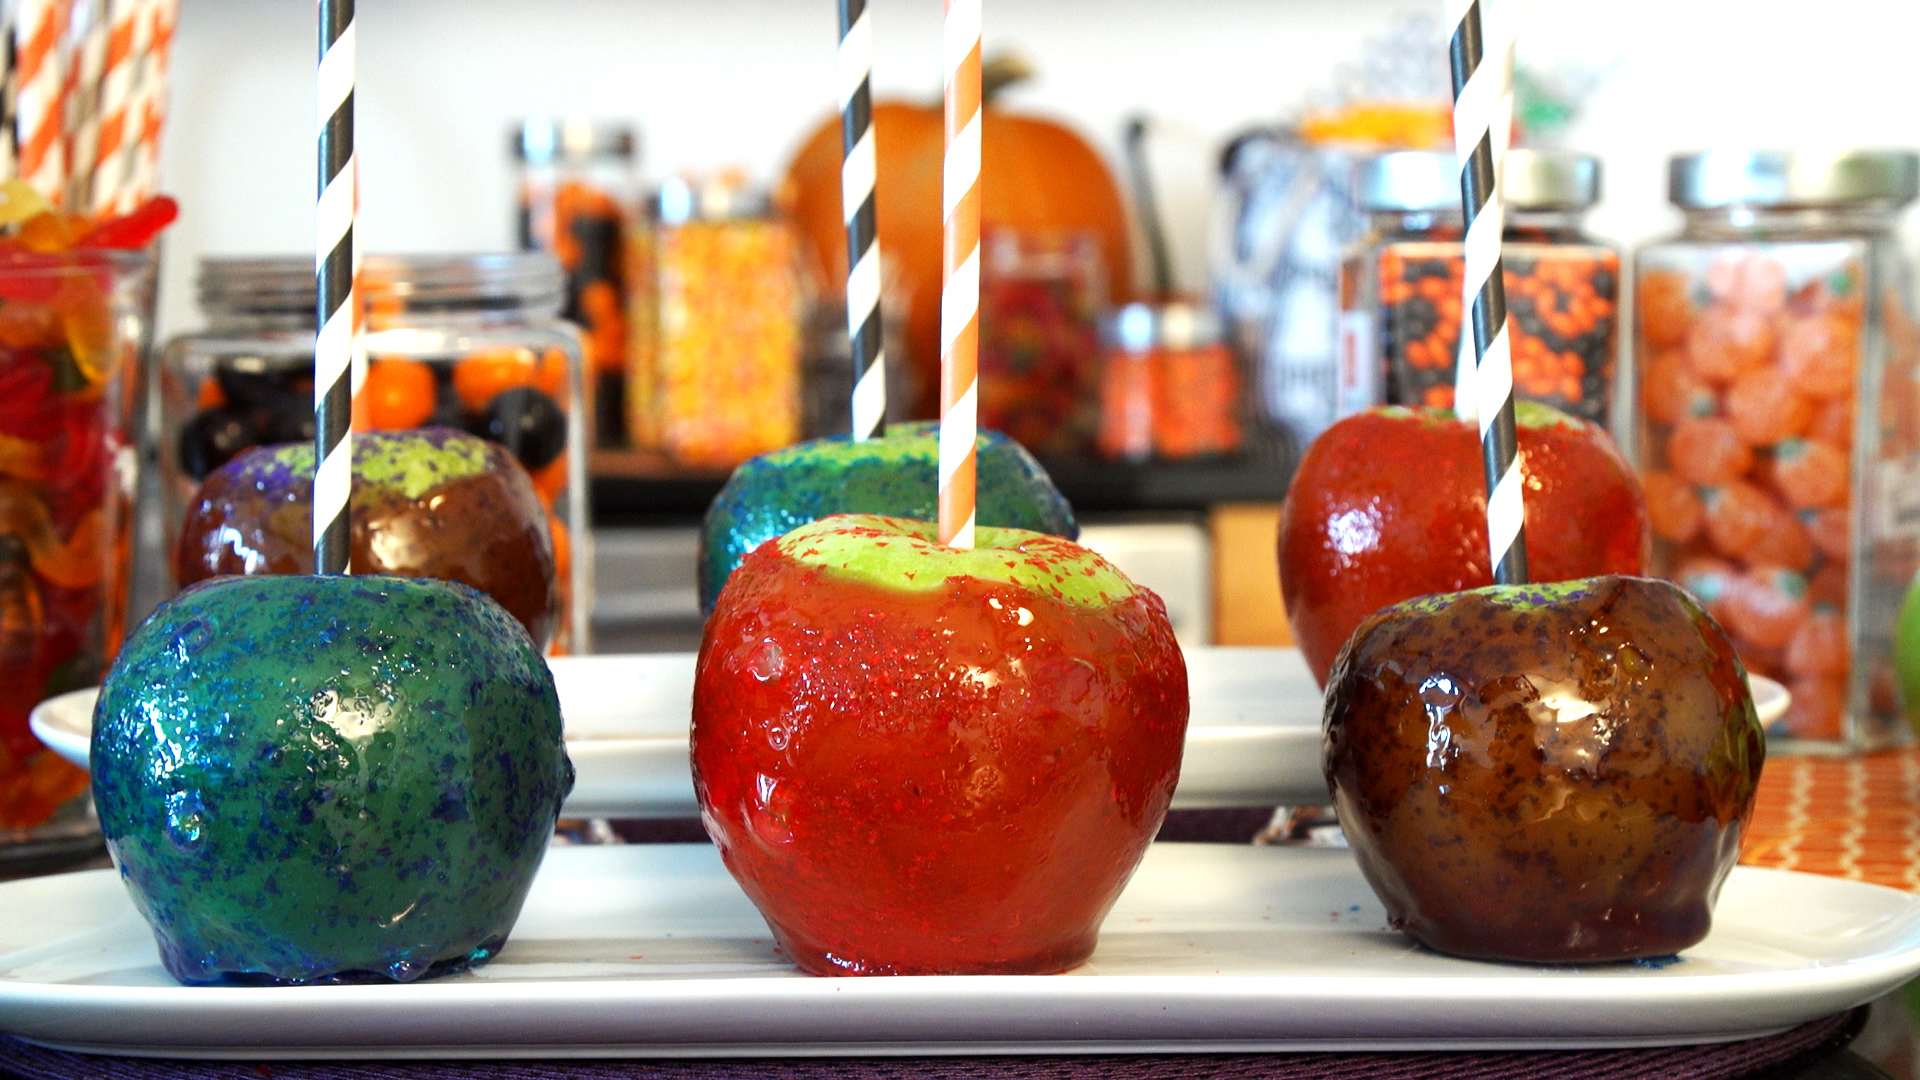 Candy Apples Candy Apples new picture